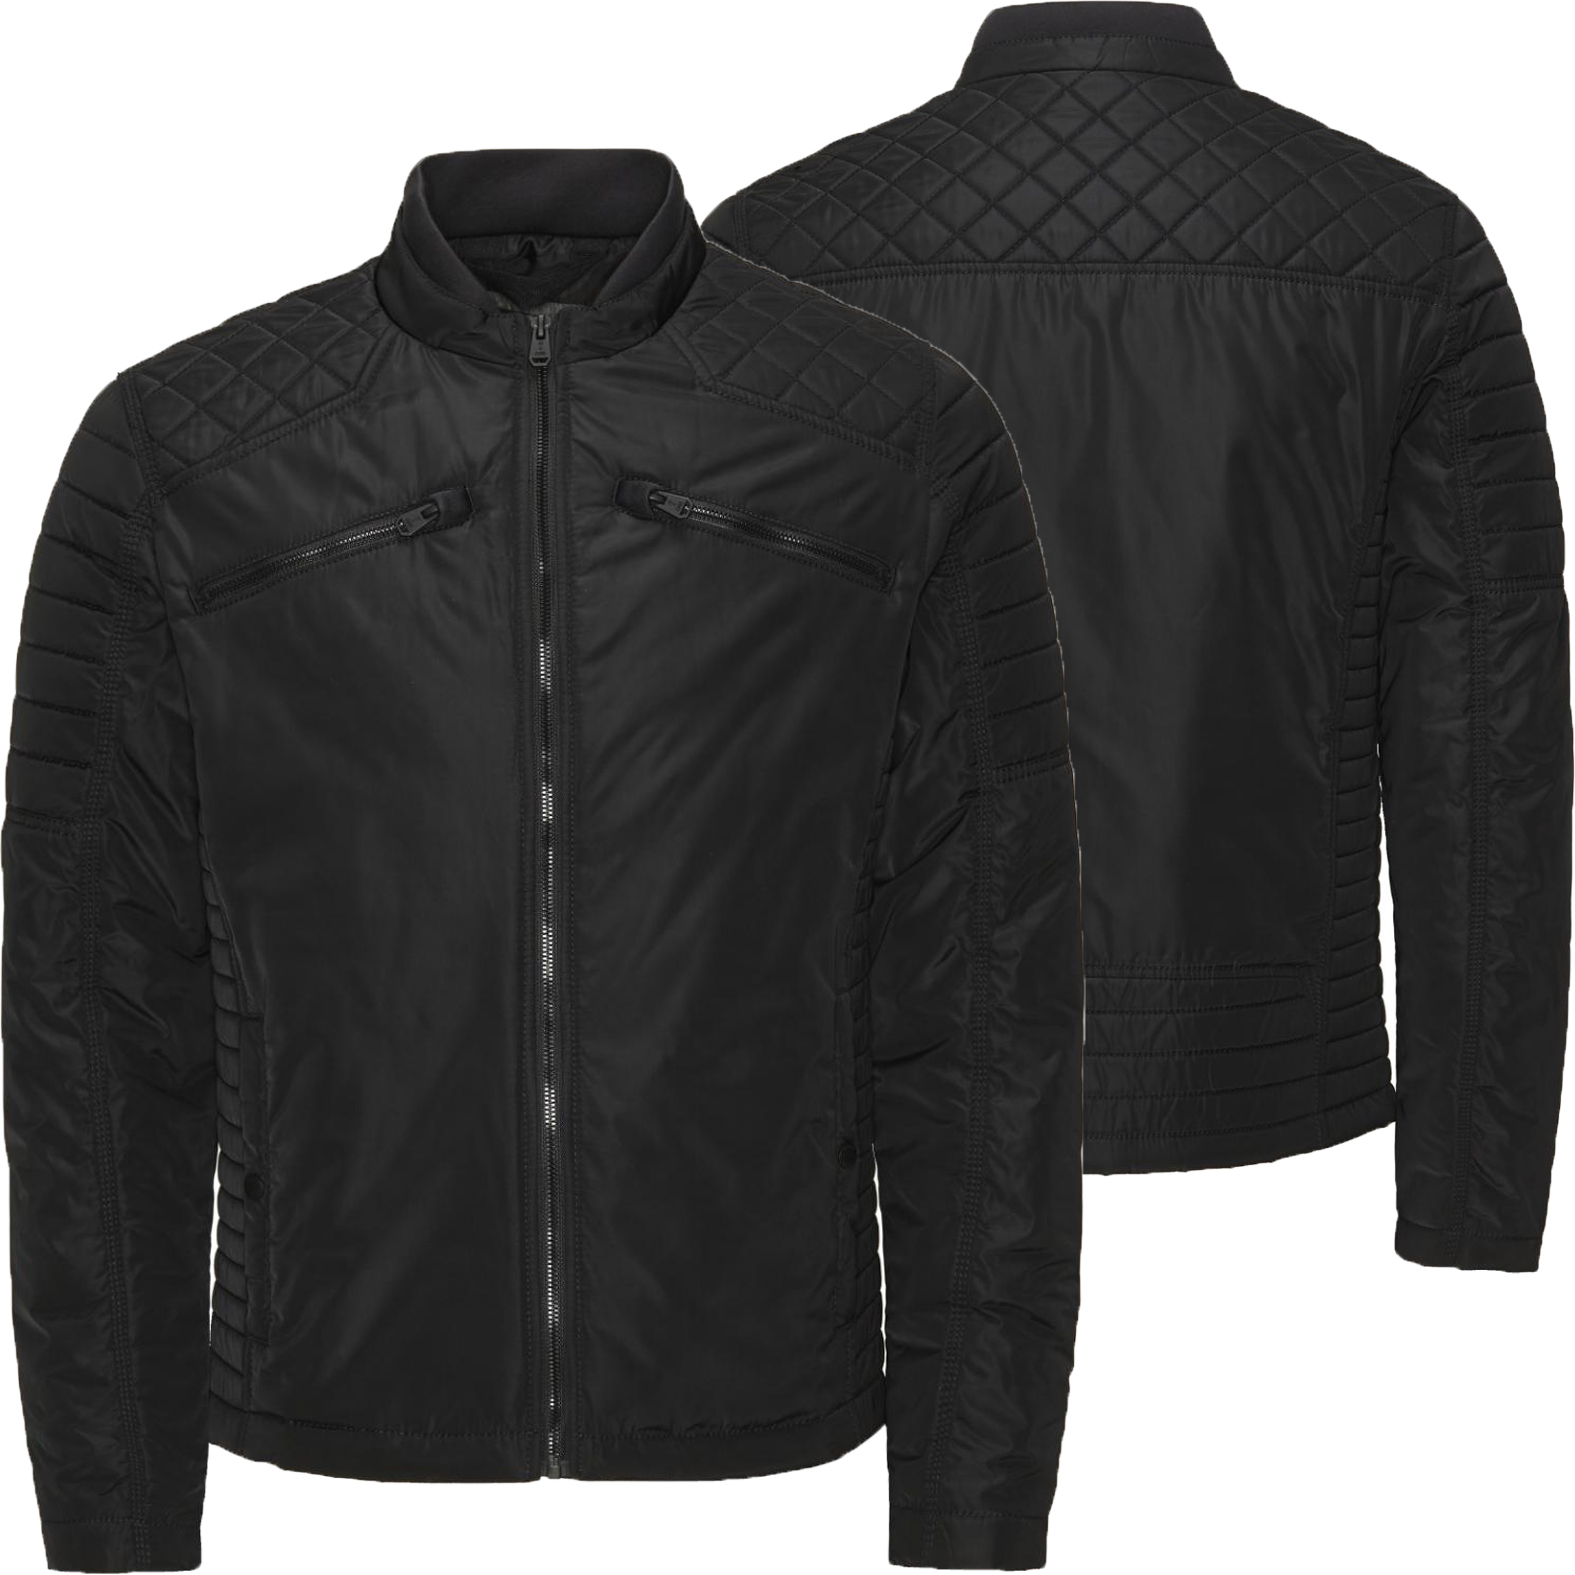 jack jones herren jacke jjco eli light biker s m l xl xxl. Black Bedroom Furniture Sets. Home Design Ideas